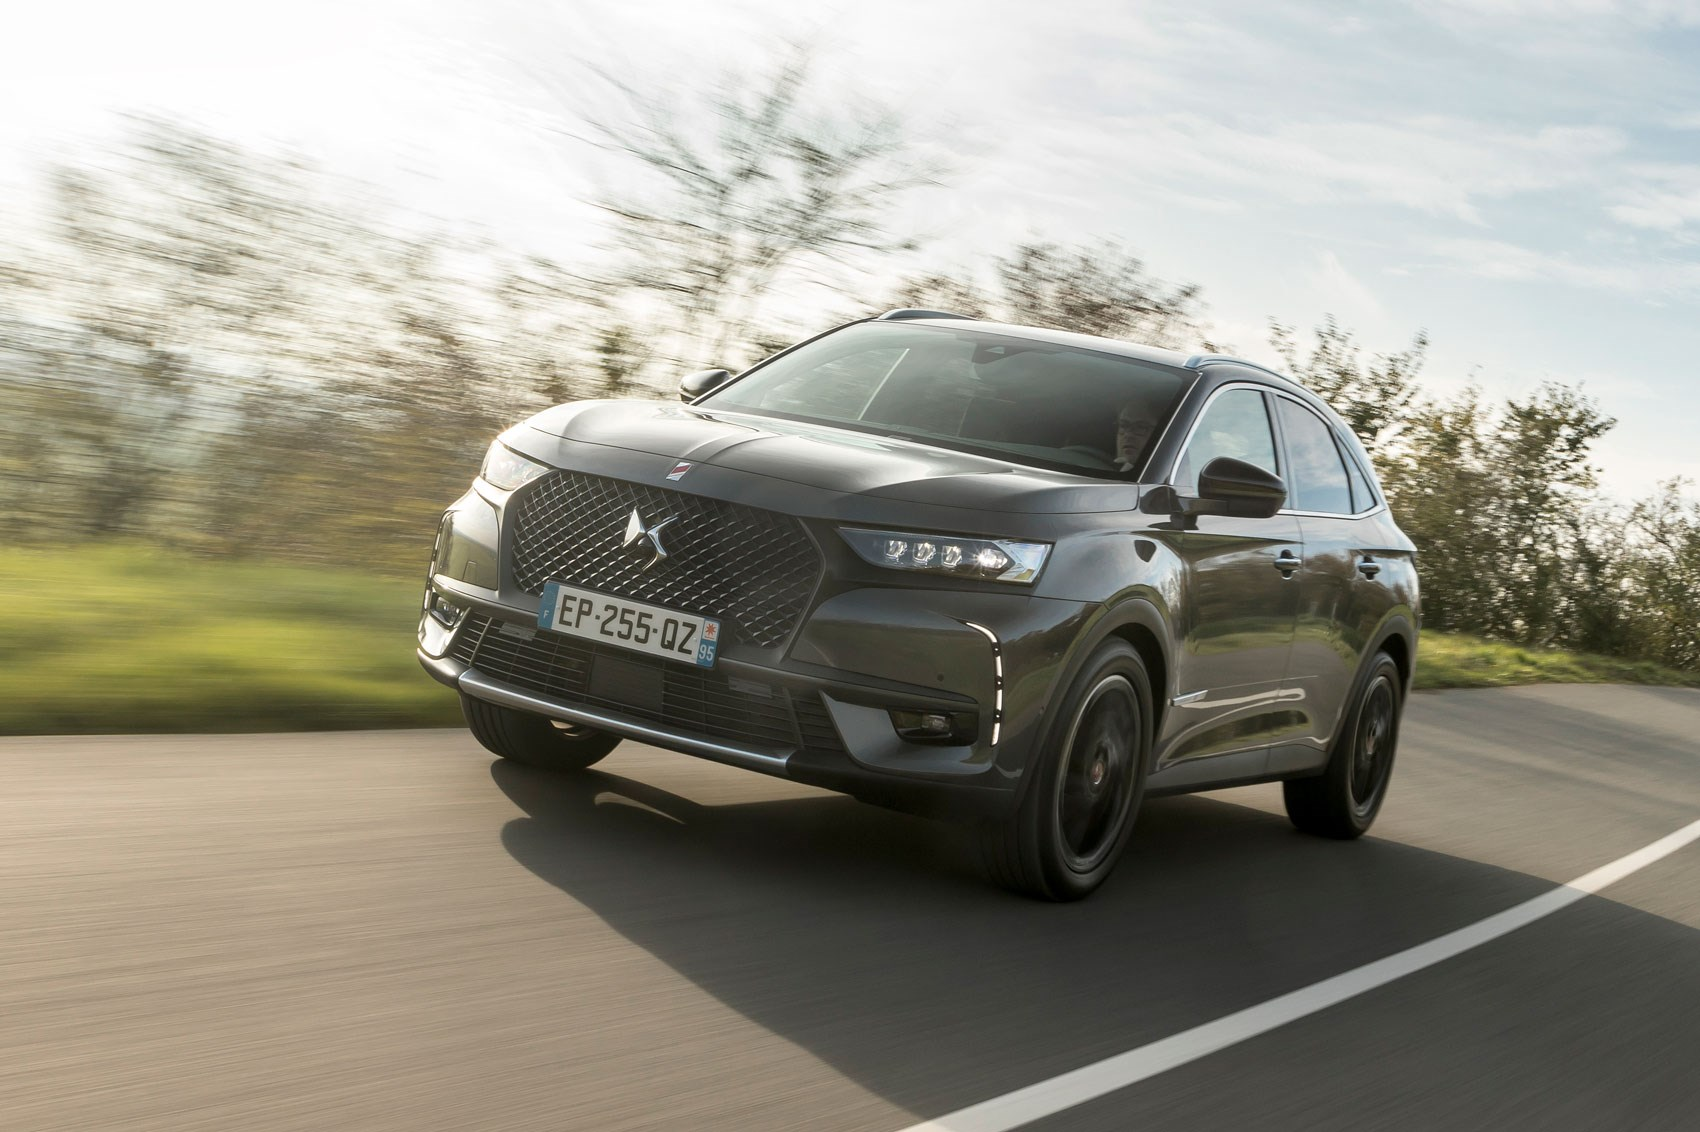 DS7 Crossback diesel review by CAR magazine